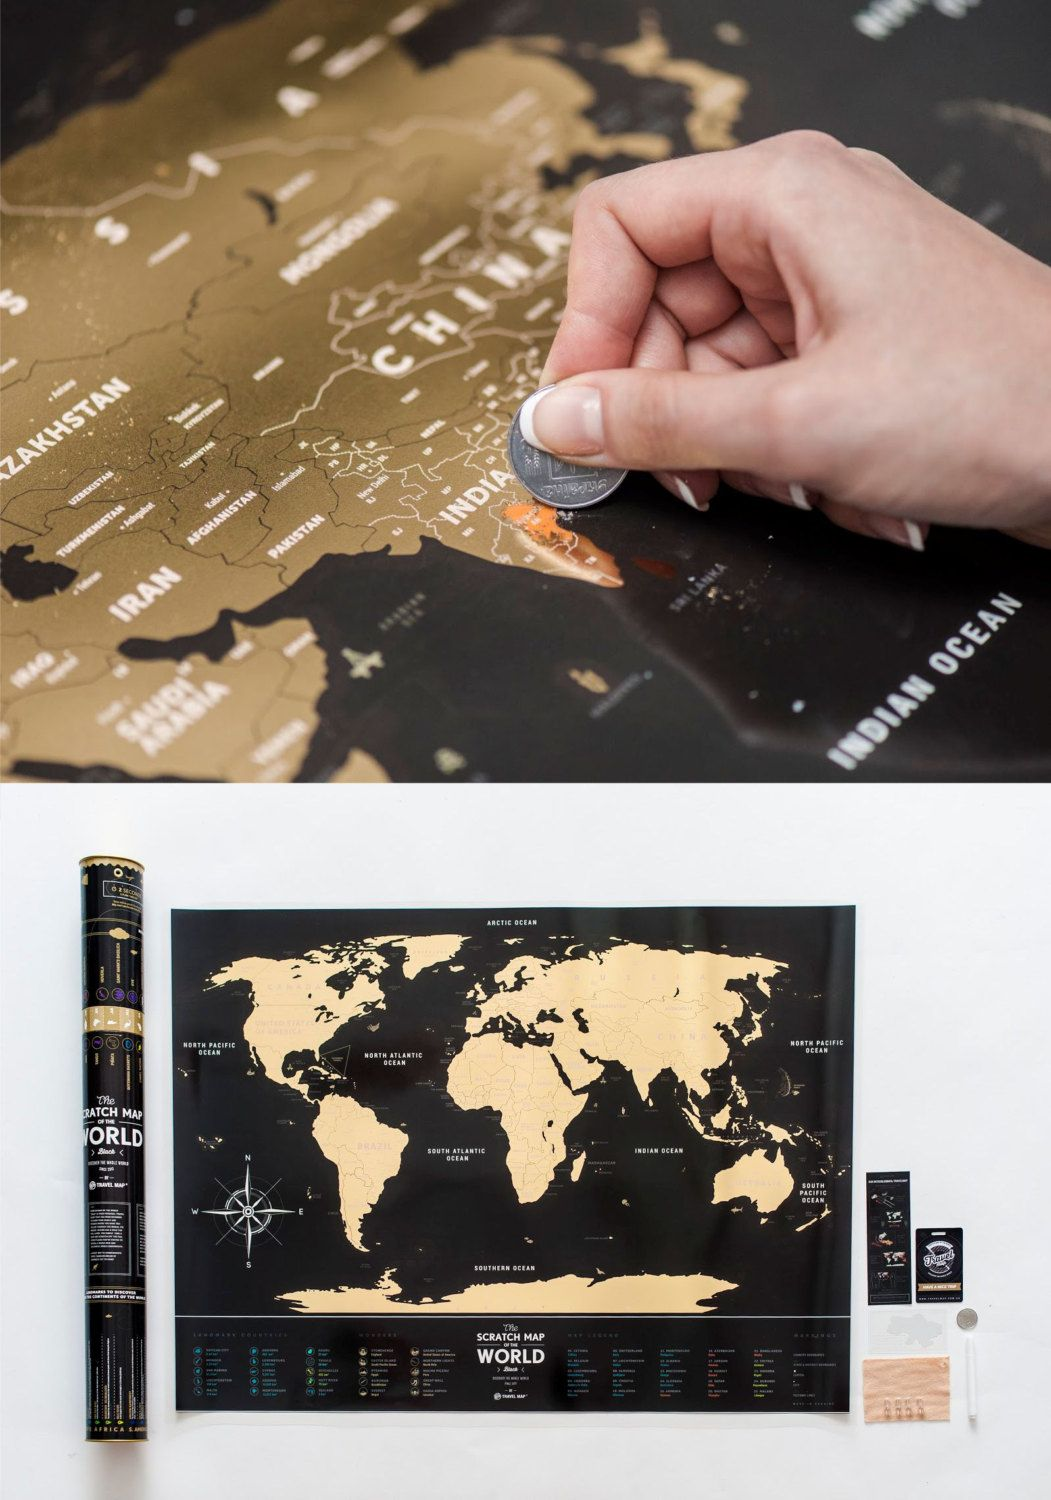 Premium Plastic Black Scratch Map Of The World Free Shipping Worldwide!  Scratch Map Gift